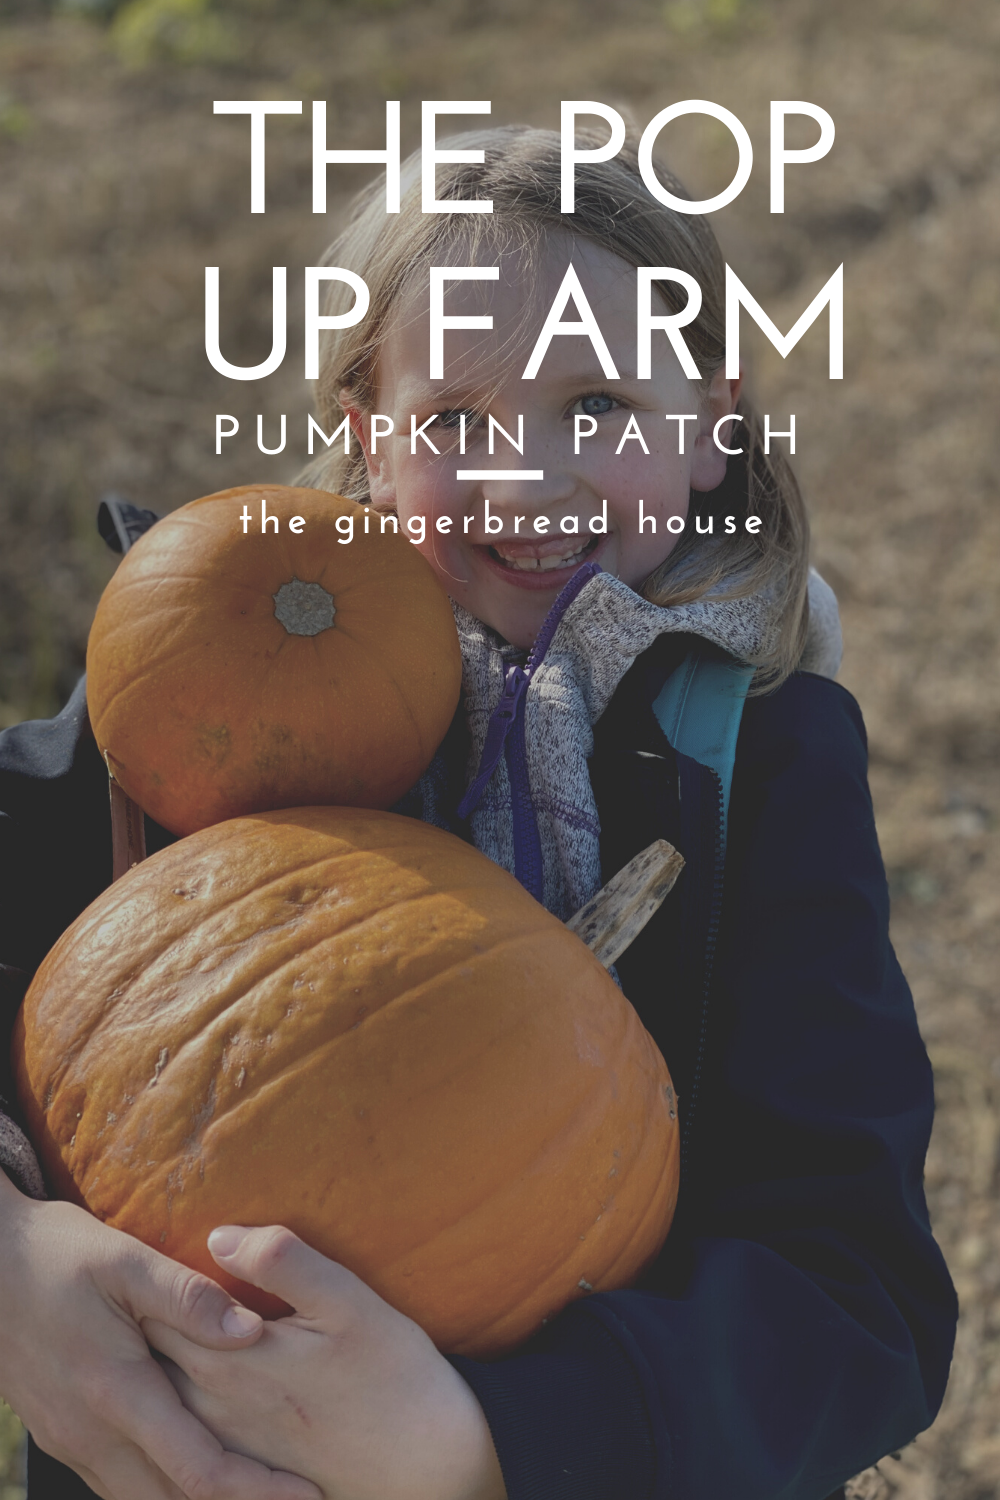 A trip to The Pop Up Farms' Pumpkin Patch